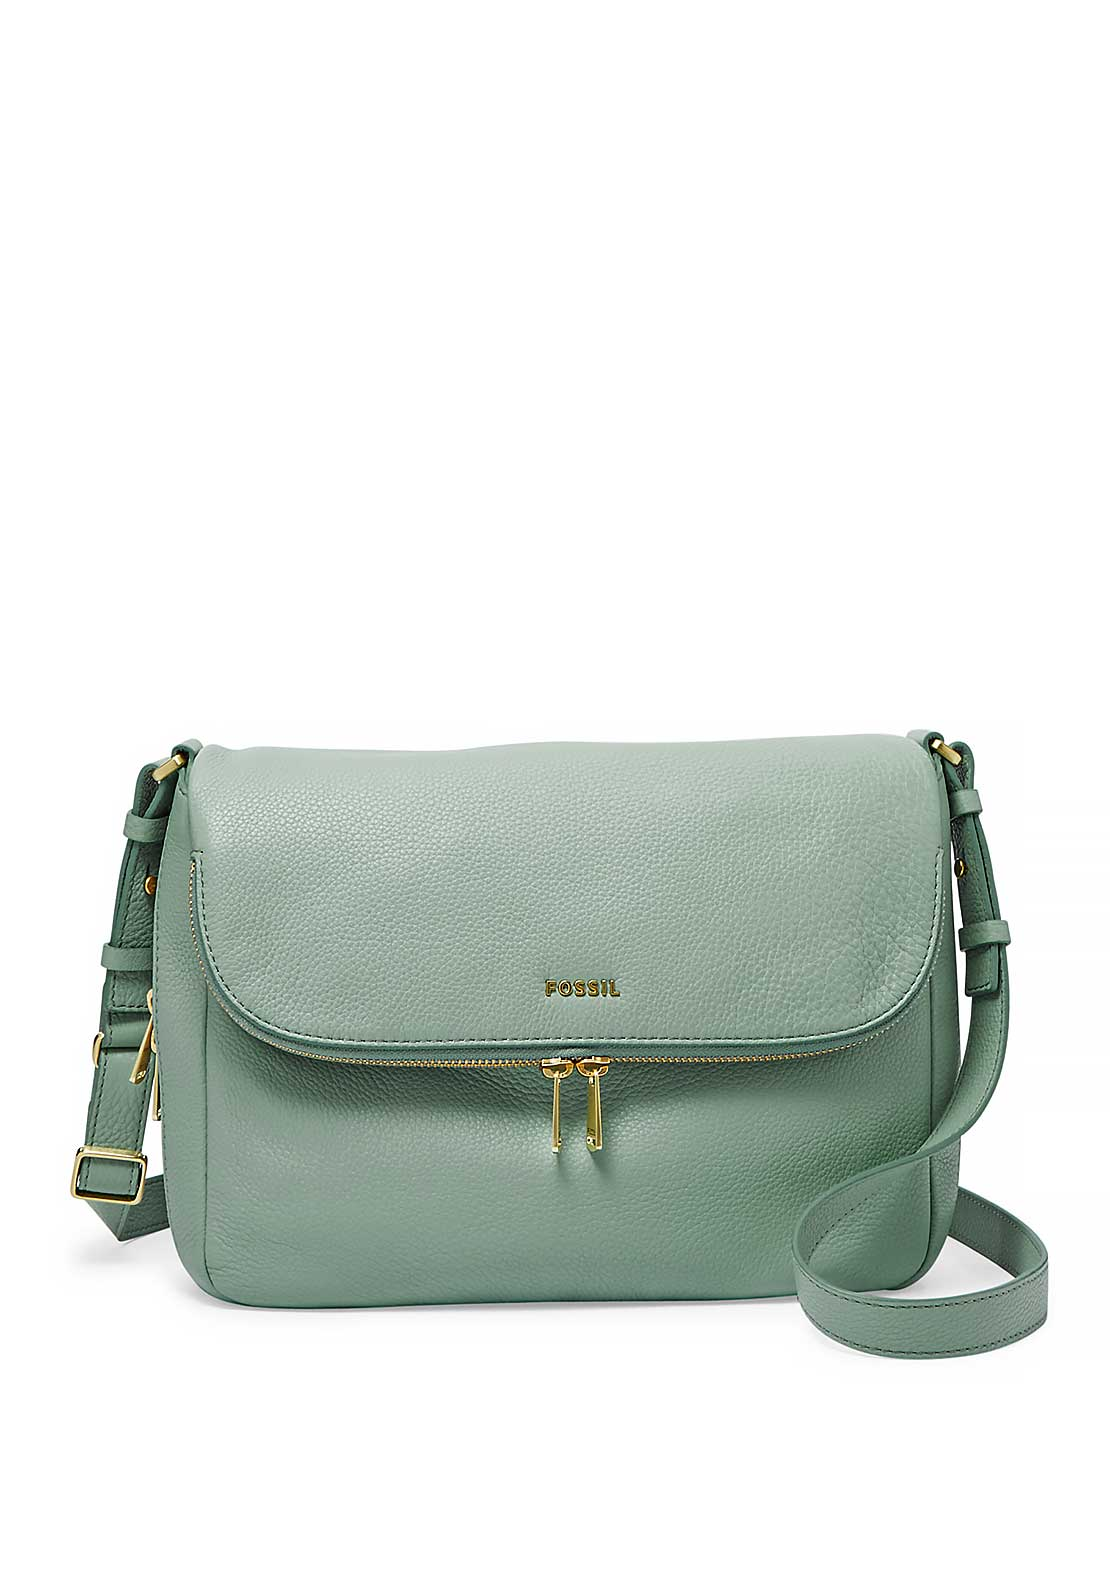 Fossil Preston Flap Bag, Green